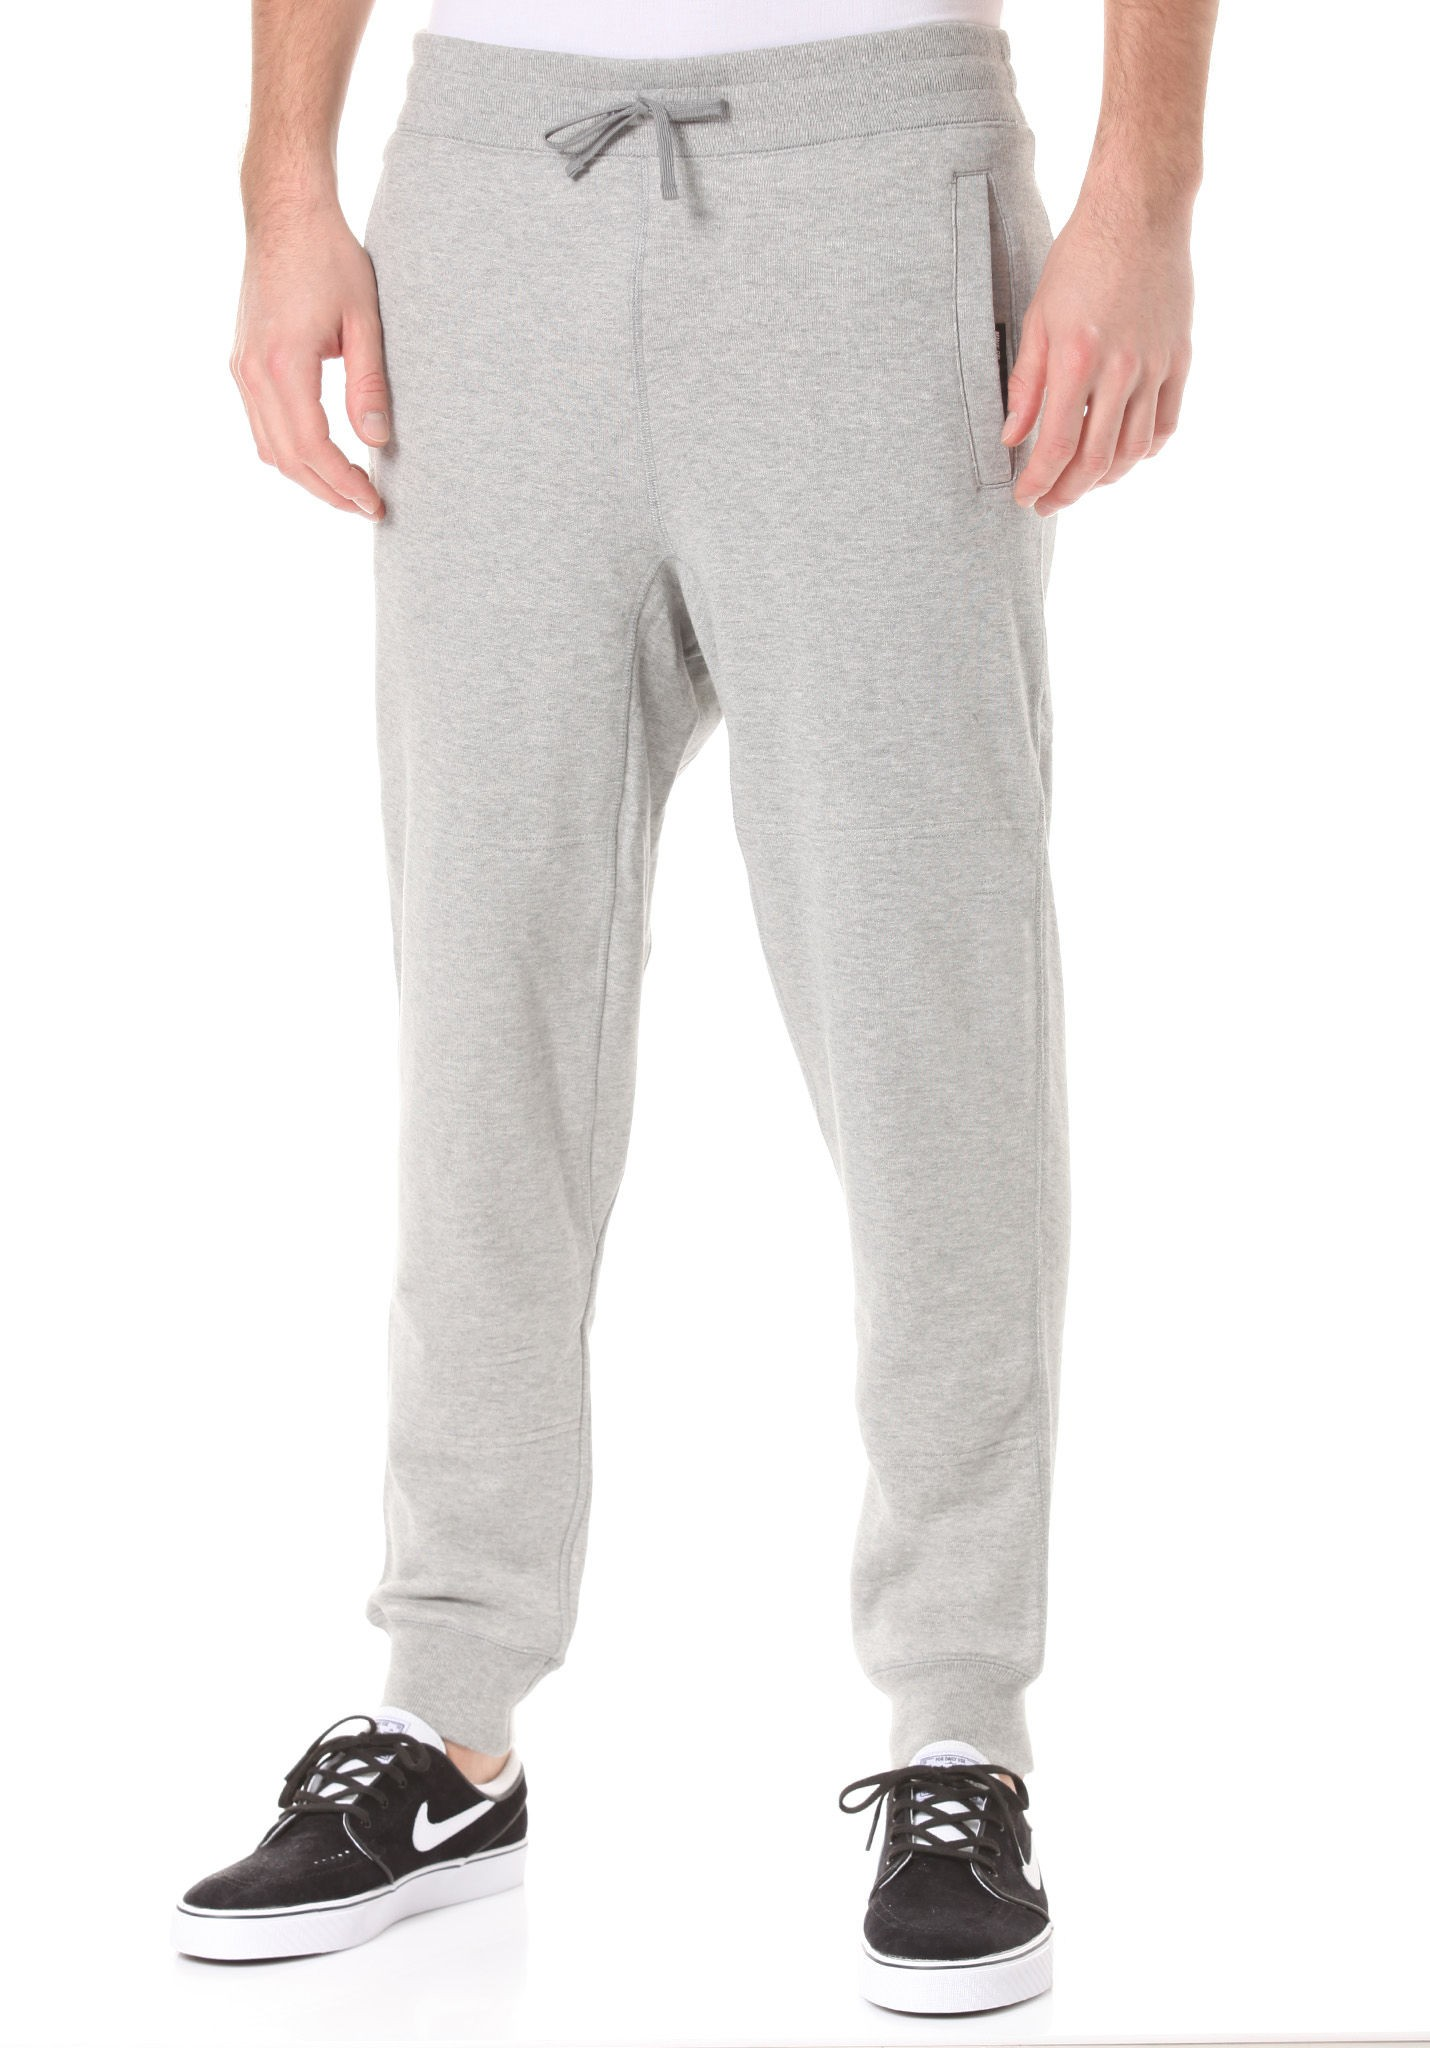 pantalon survetement homme nike